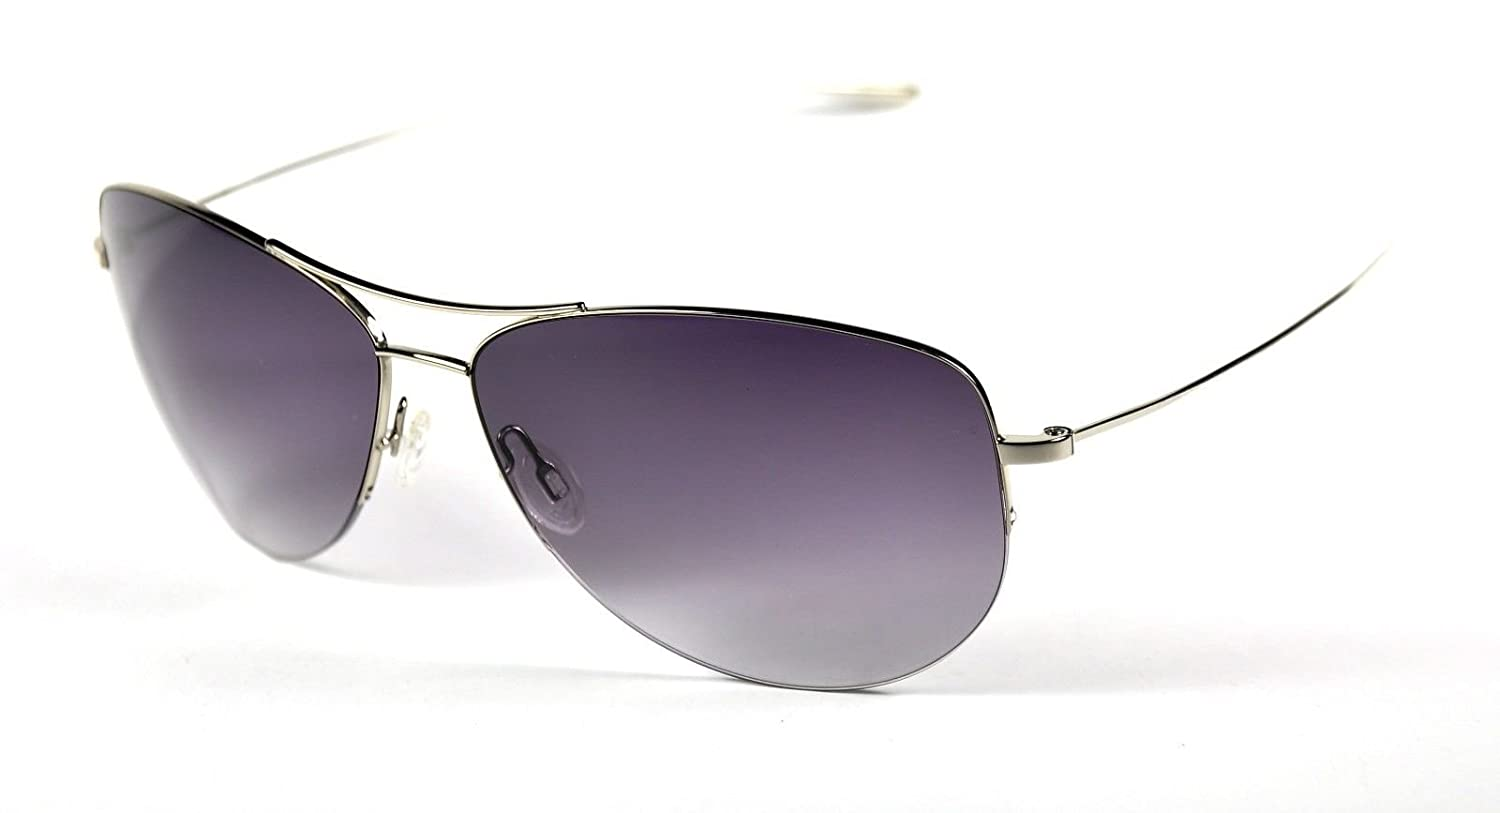 6aba00f54c69a Amazon.com  OLIVER PEOPLES STRUMMER color SILVER Sunglasses  Clothing